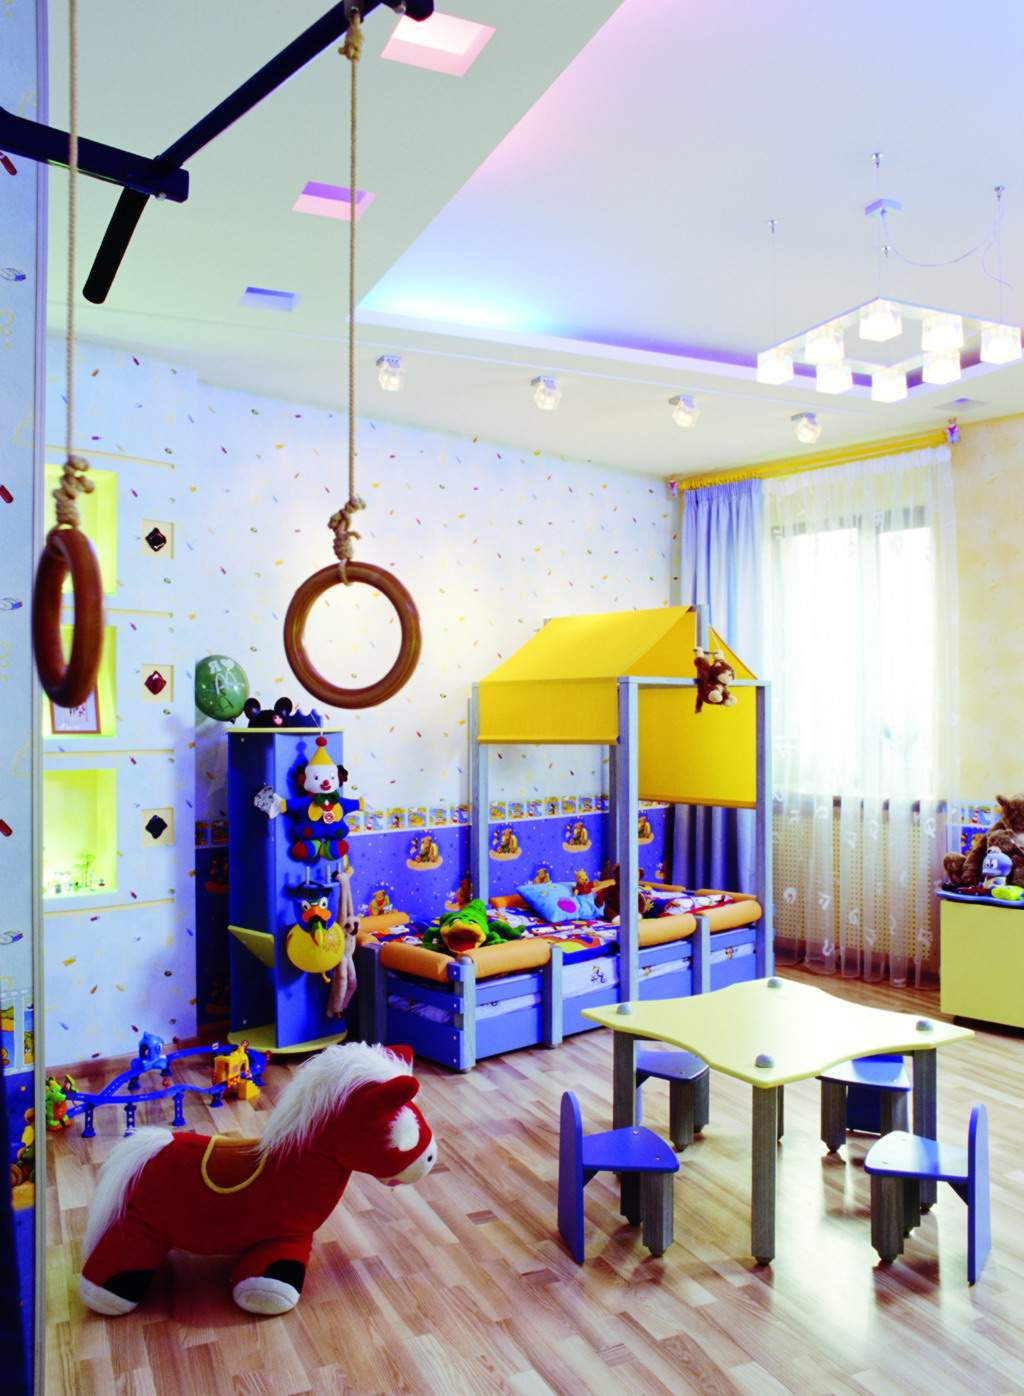 15 creative kids bedroom decorating ideas for Children bedroom ideas